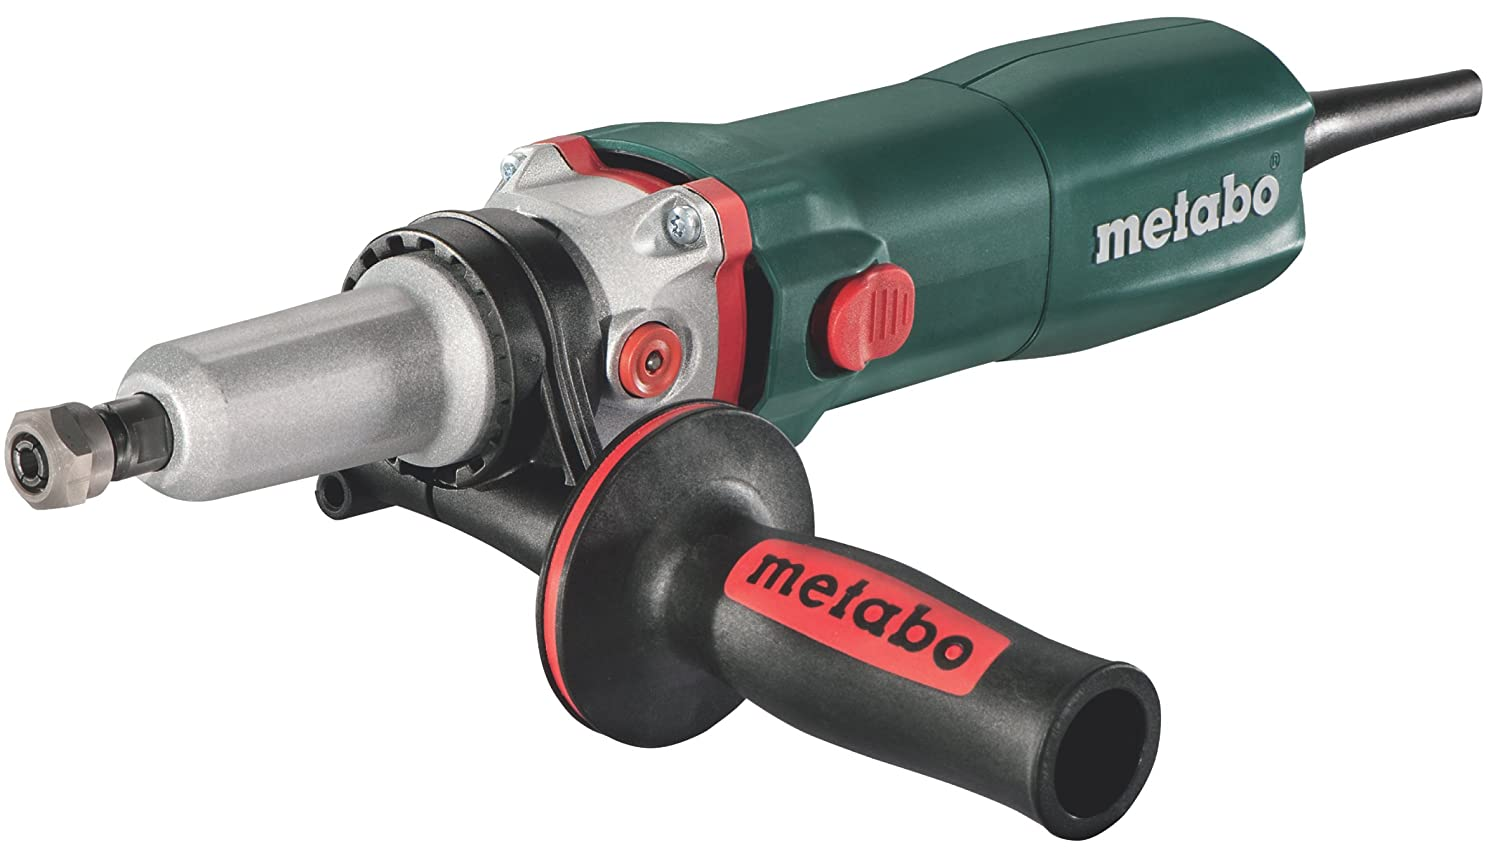 Metabo GE 950 G Plus 8.5-Amp 950-watt High Torque Die Grinder Variable Speed, 2500 – 8,700 RPM